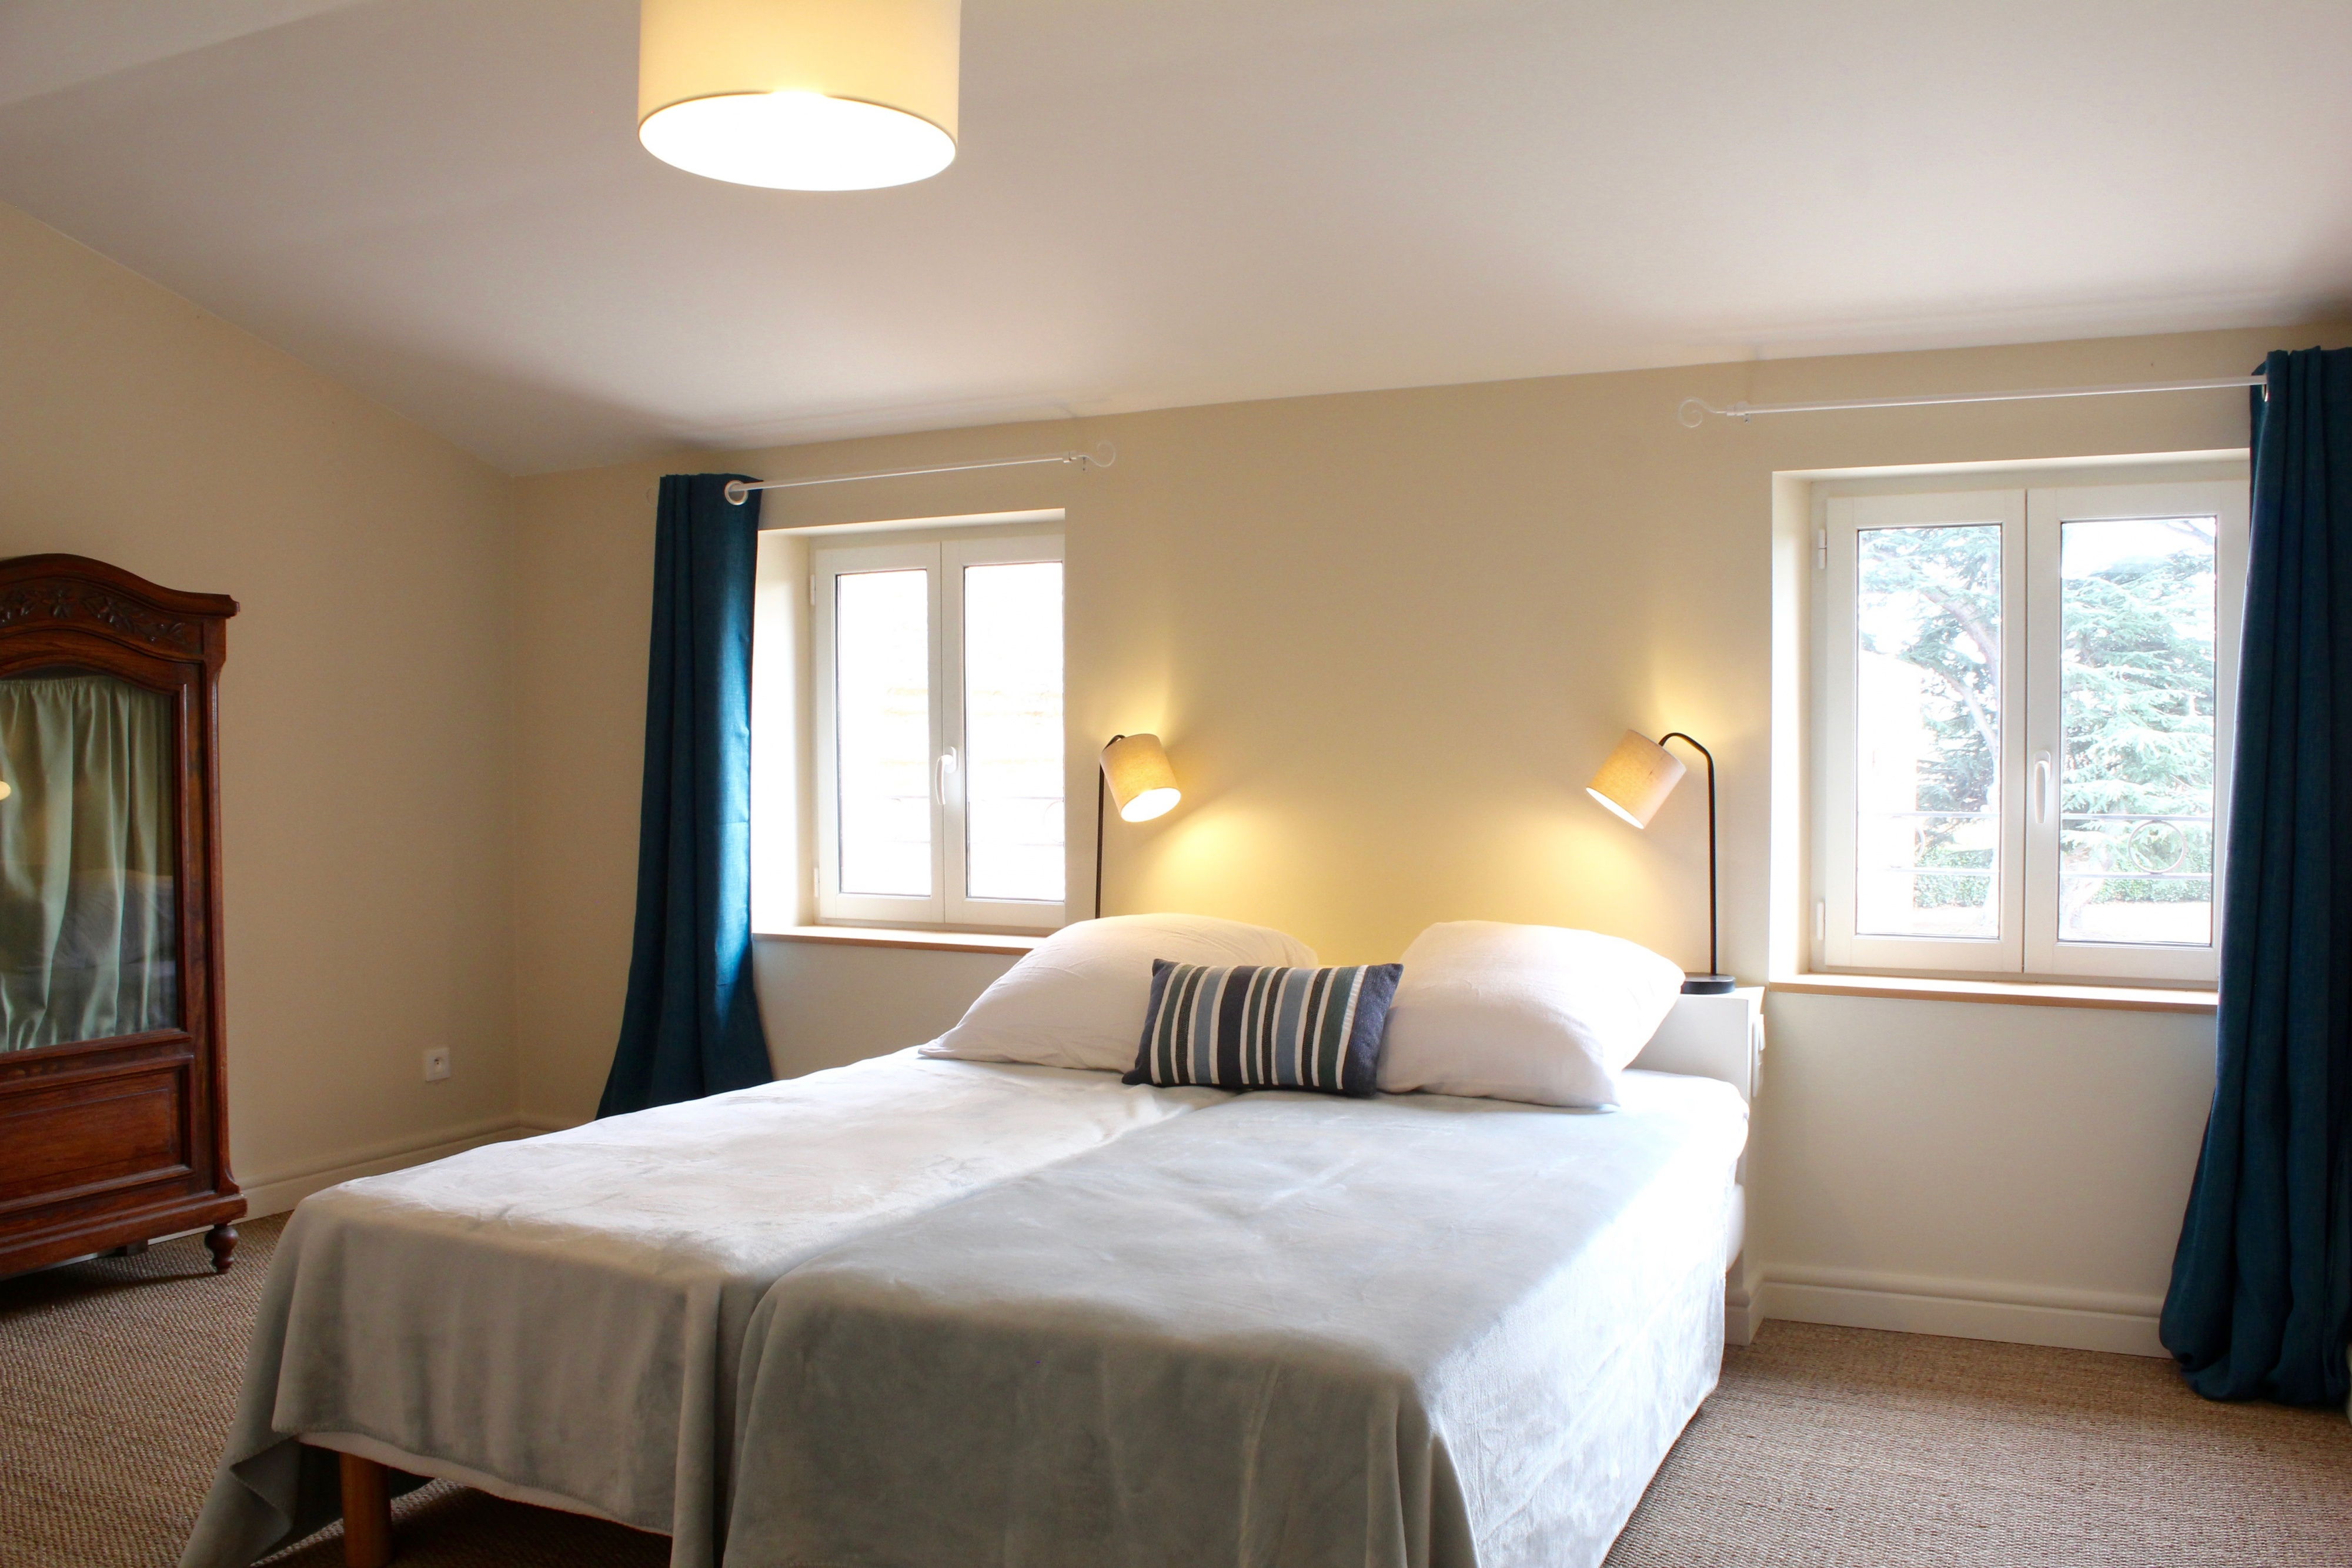 Guest apartments and Bed & Breakfast Ch¢teau Lavalade